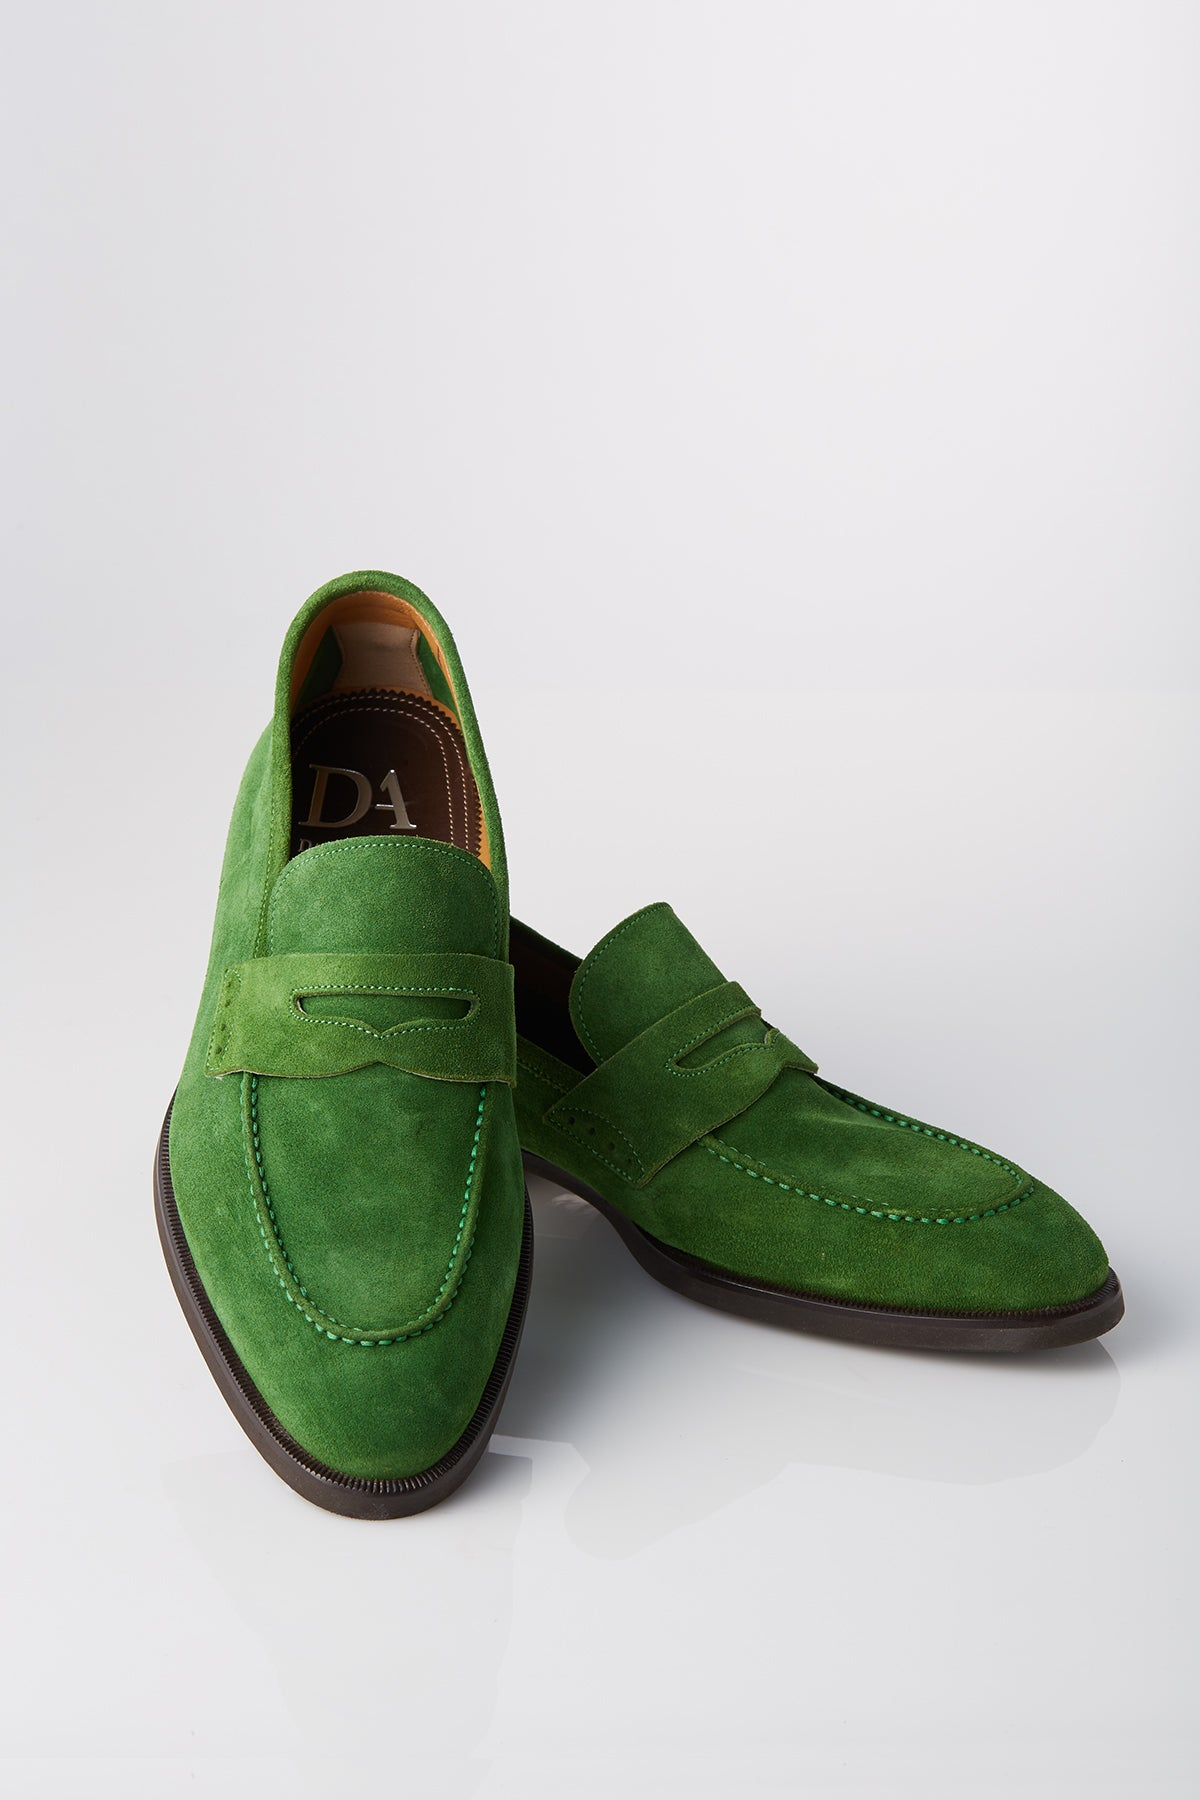 David August Suede Penny Loafer in Sport Green Di Bianco